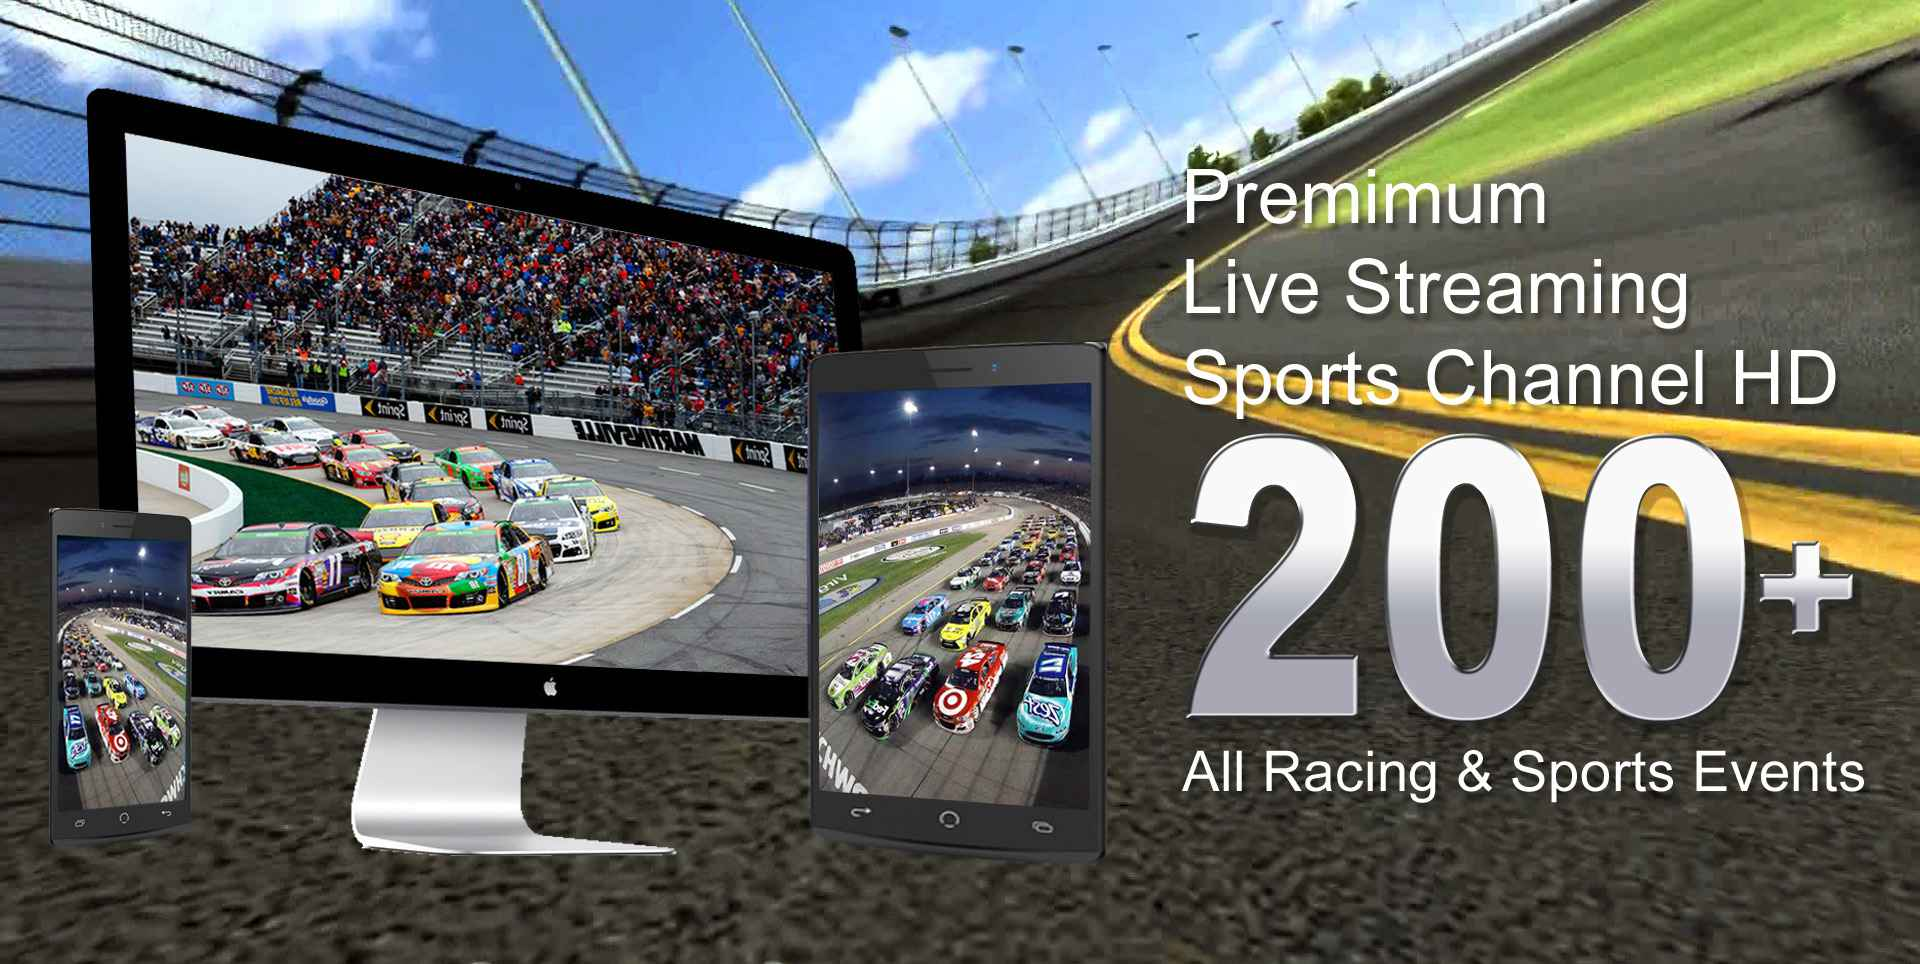 nascar-truck-race-chevrolet-silverado-250-live-on-android-or-iphone